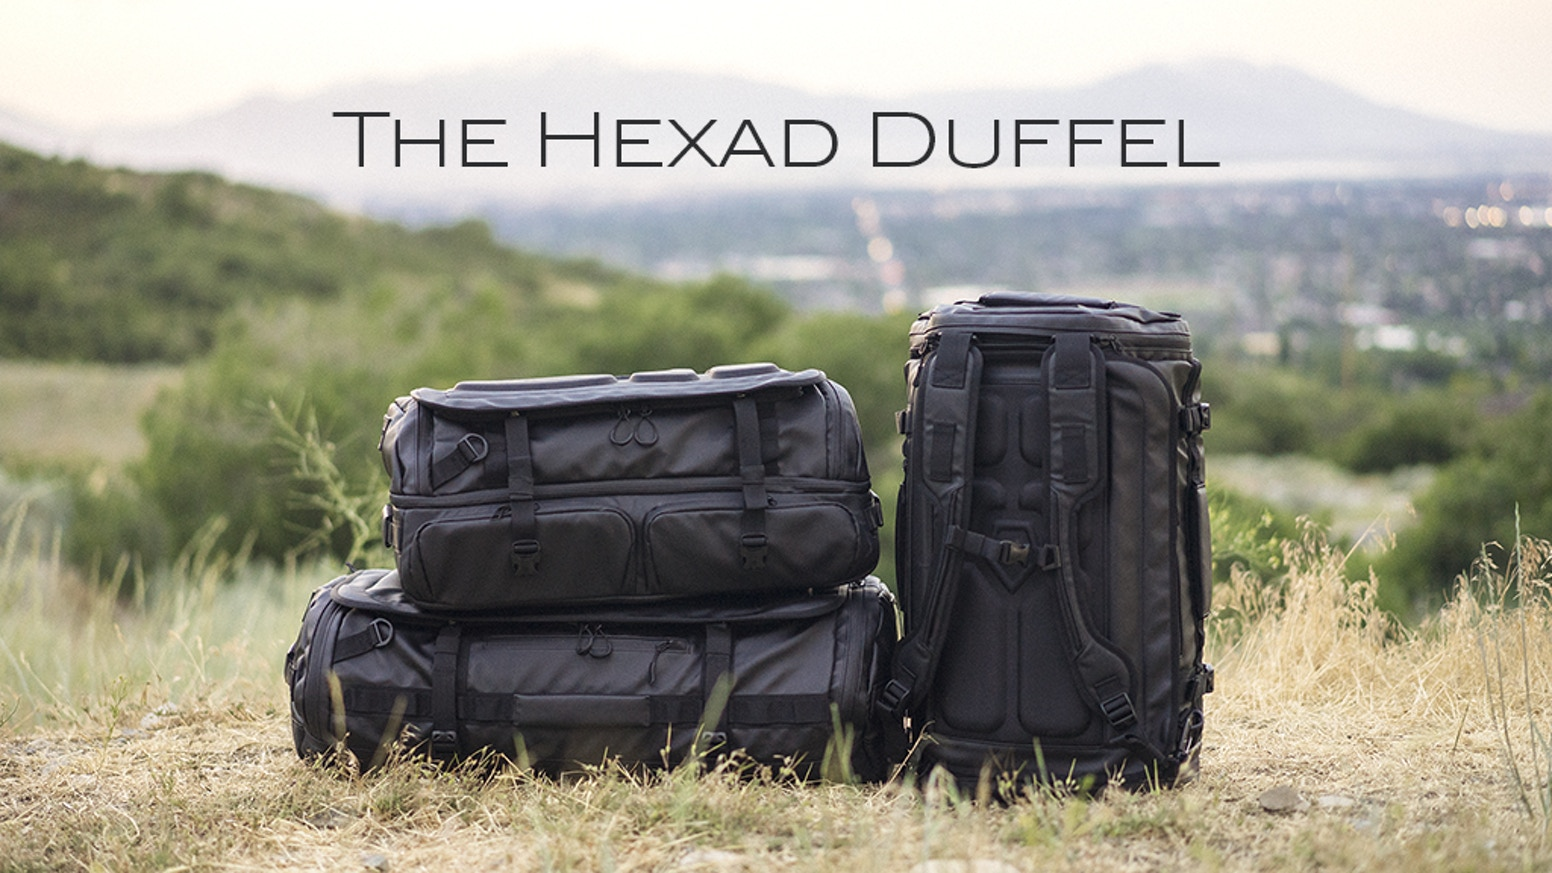 More functional than a traditional duffel. More versatile than a dedicated travel bag.